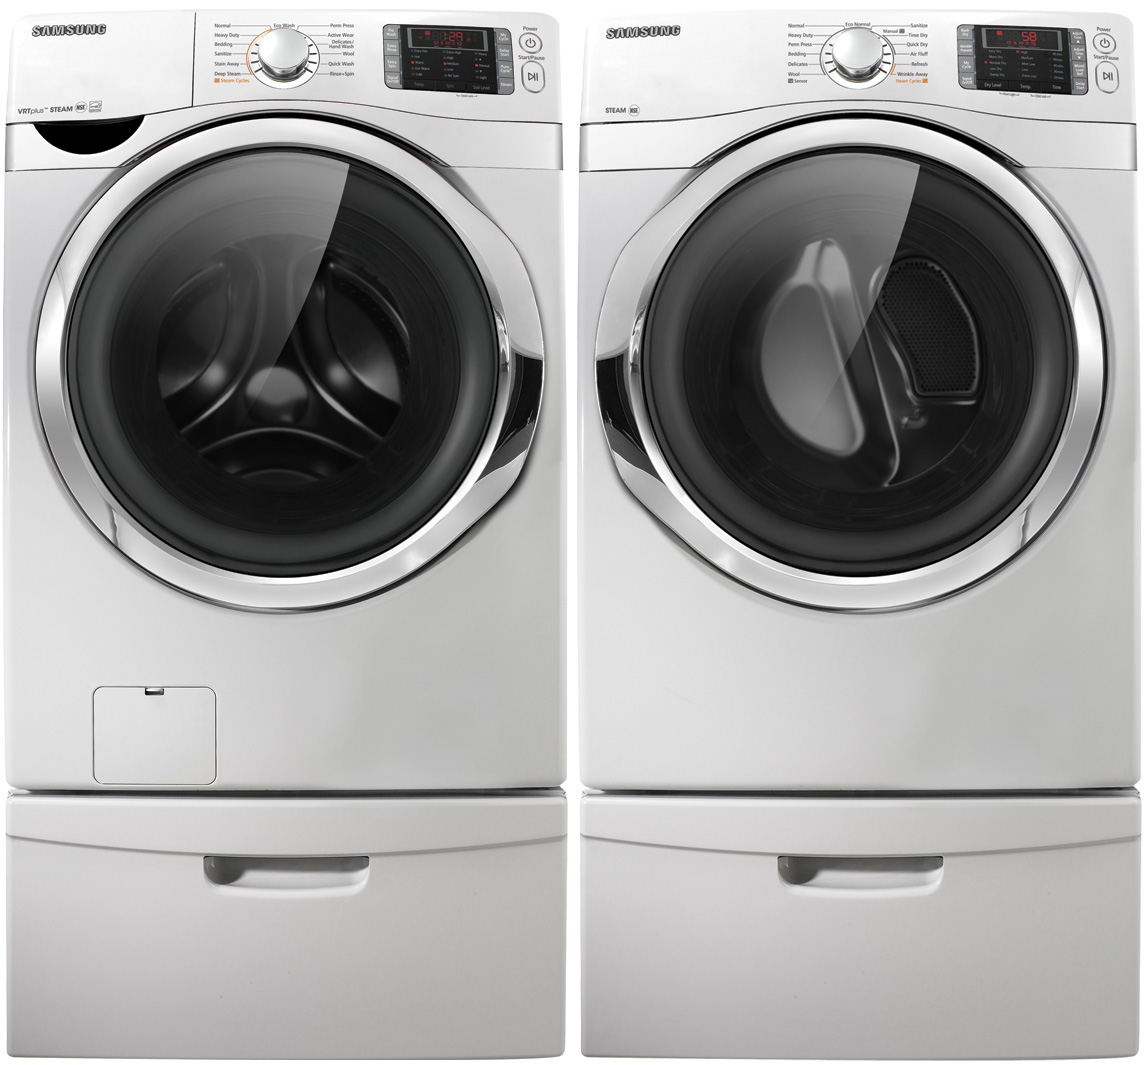 Samsung 4.3 cu. ft. High-Efficiency Front-Load Washer - White